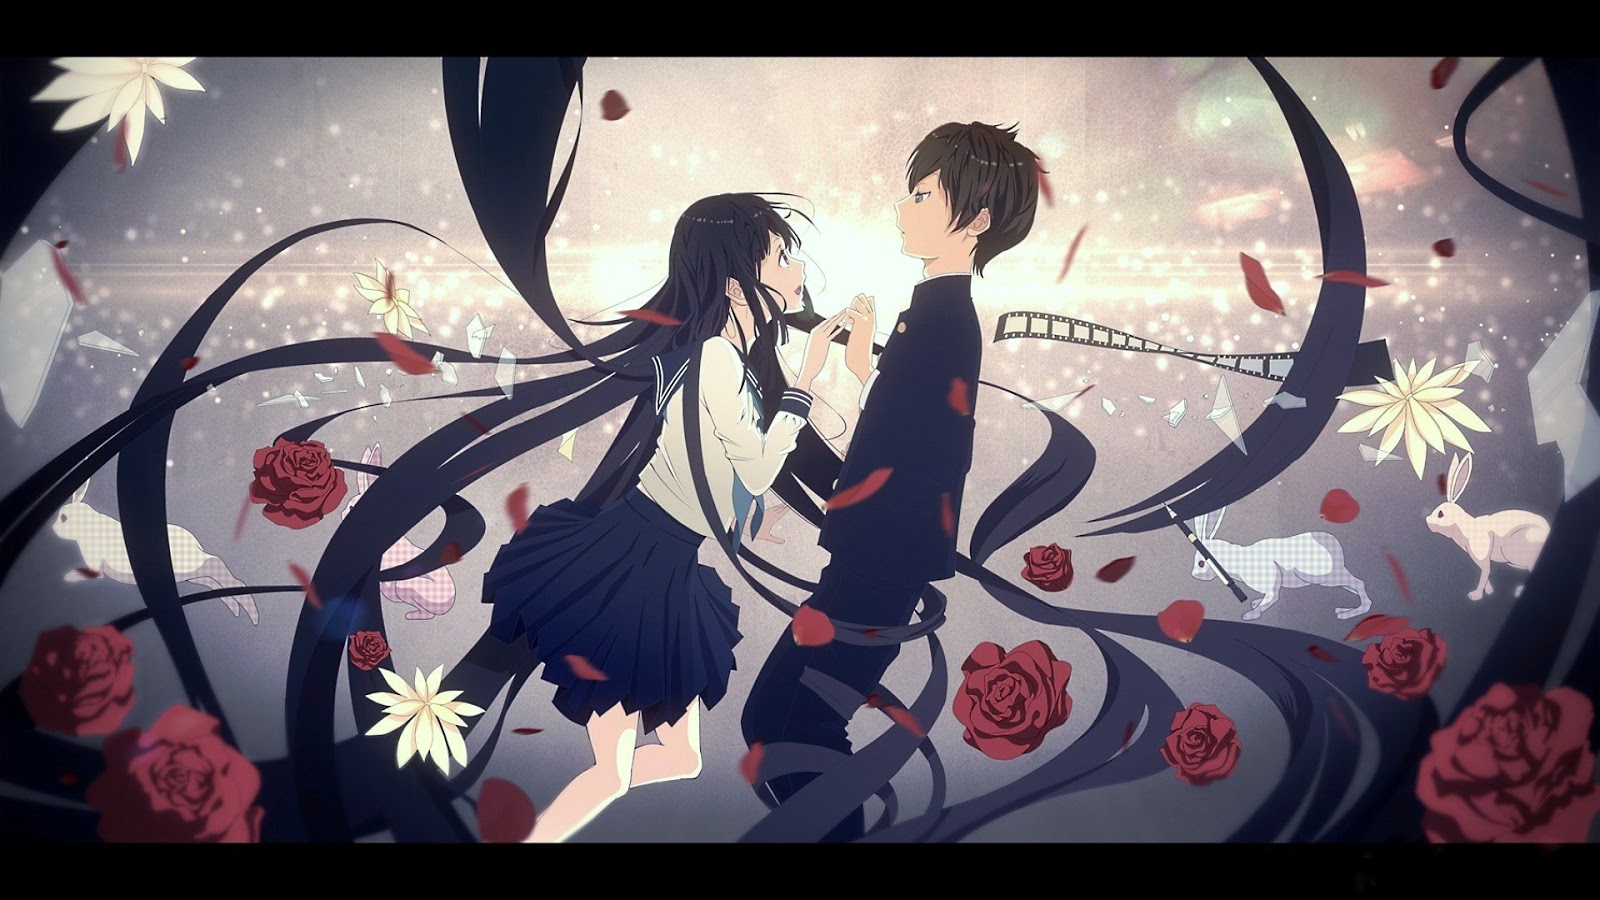 Valentines Day 2016 Animated Wallpapers 1080p HD